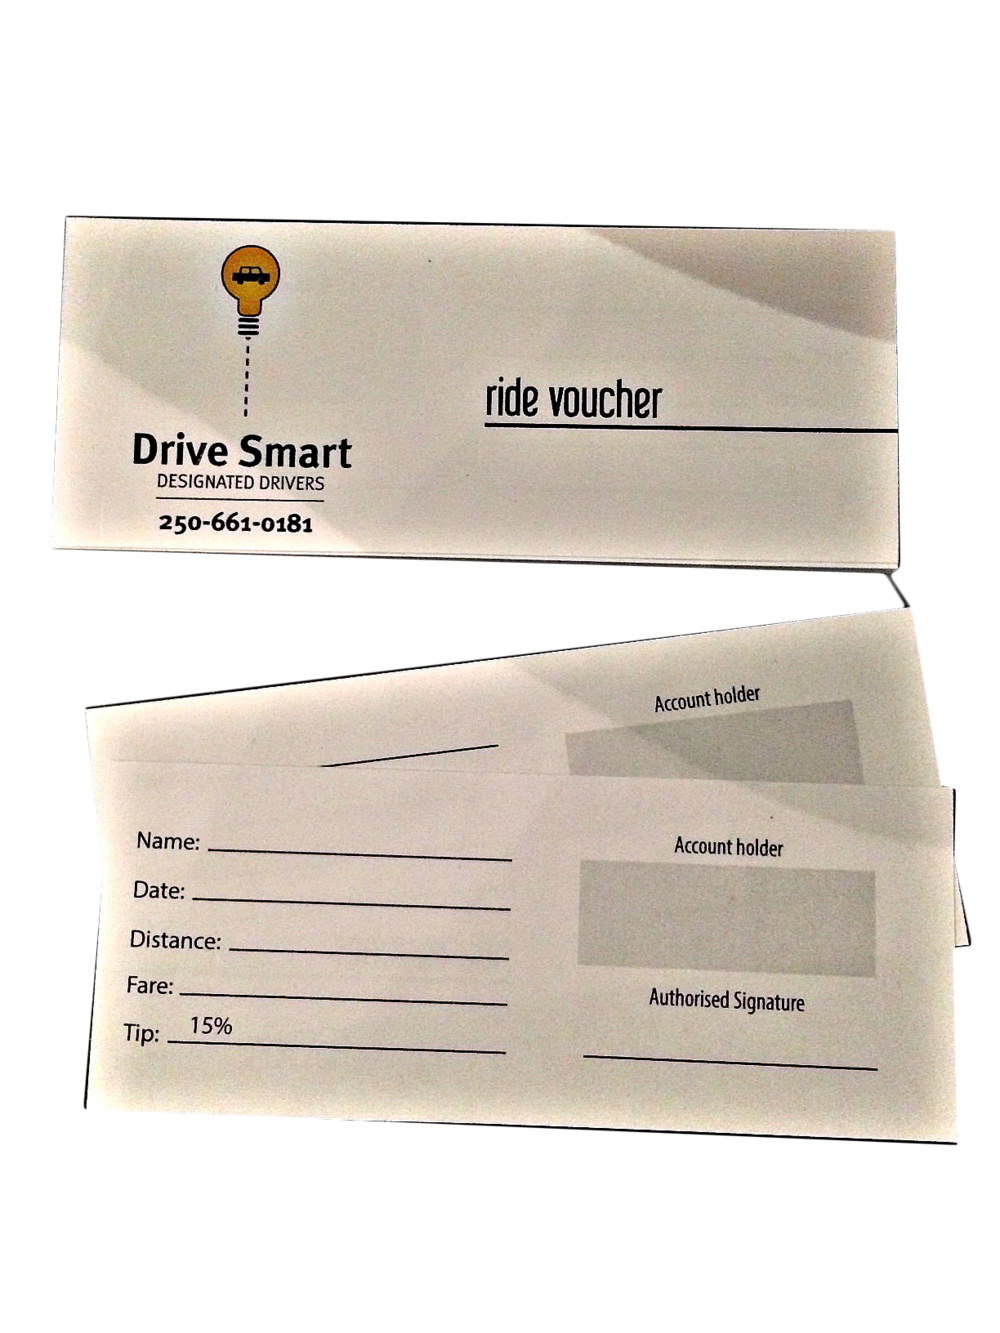 Ride vouchers for either the full trip or part of it